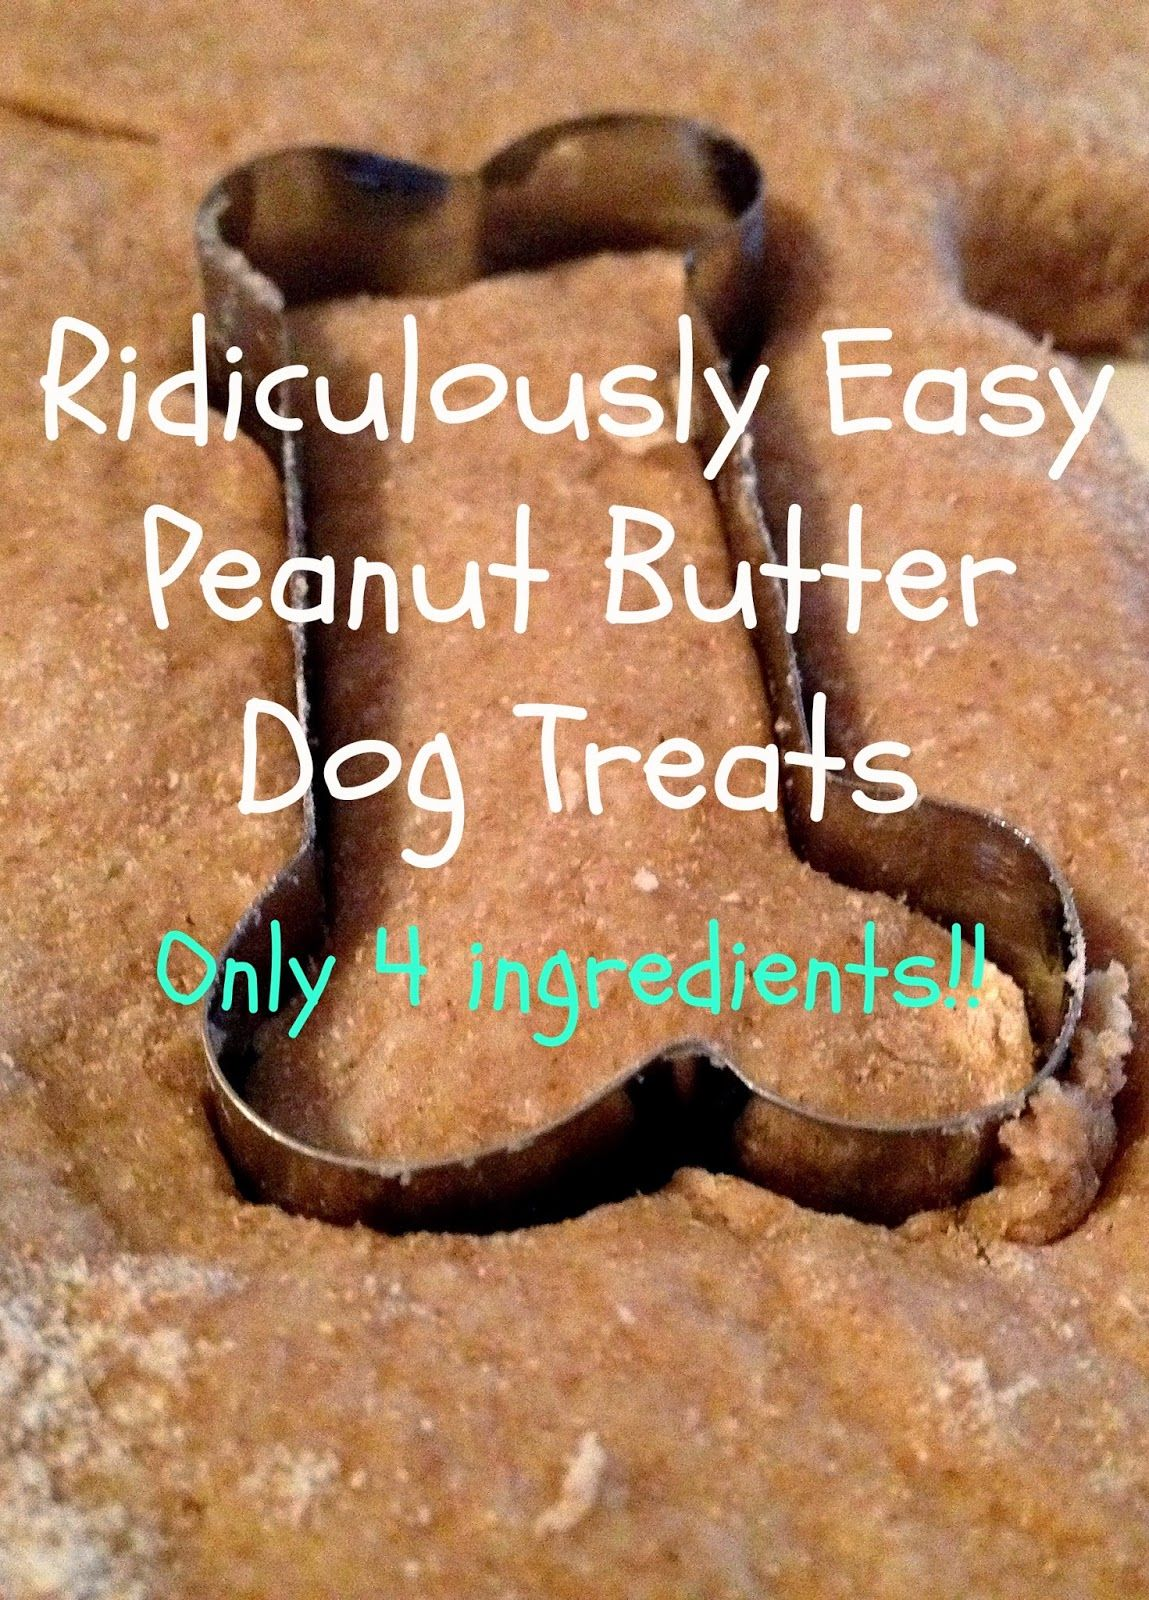 Ridiculously Easy Peanut Butter Dog Treats Homemade Peanut